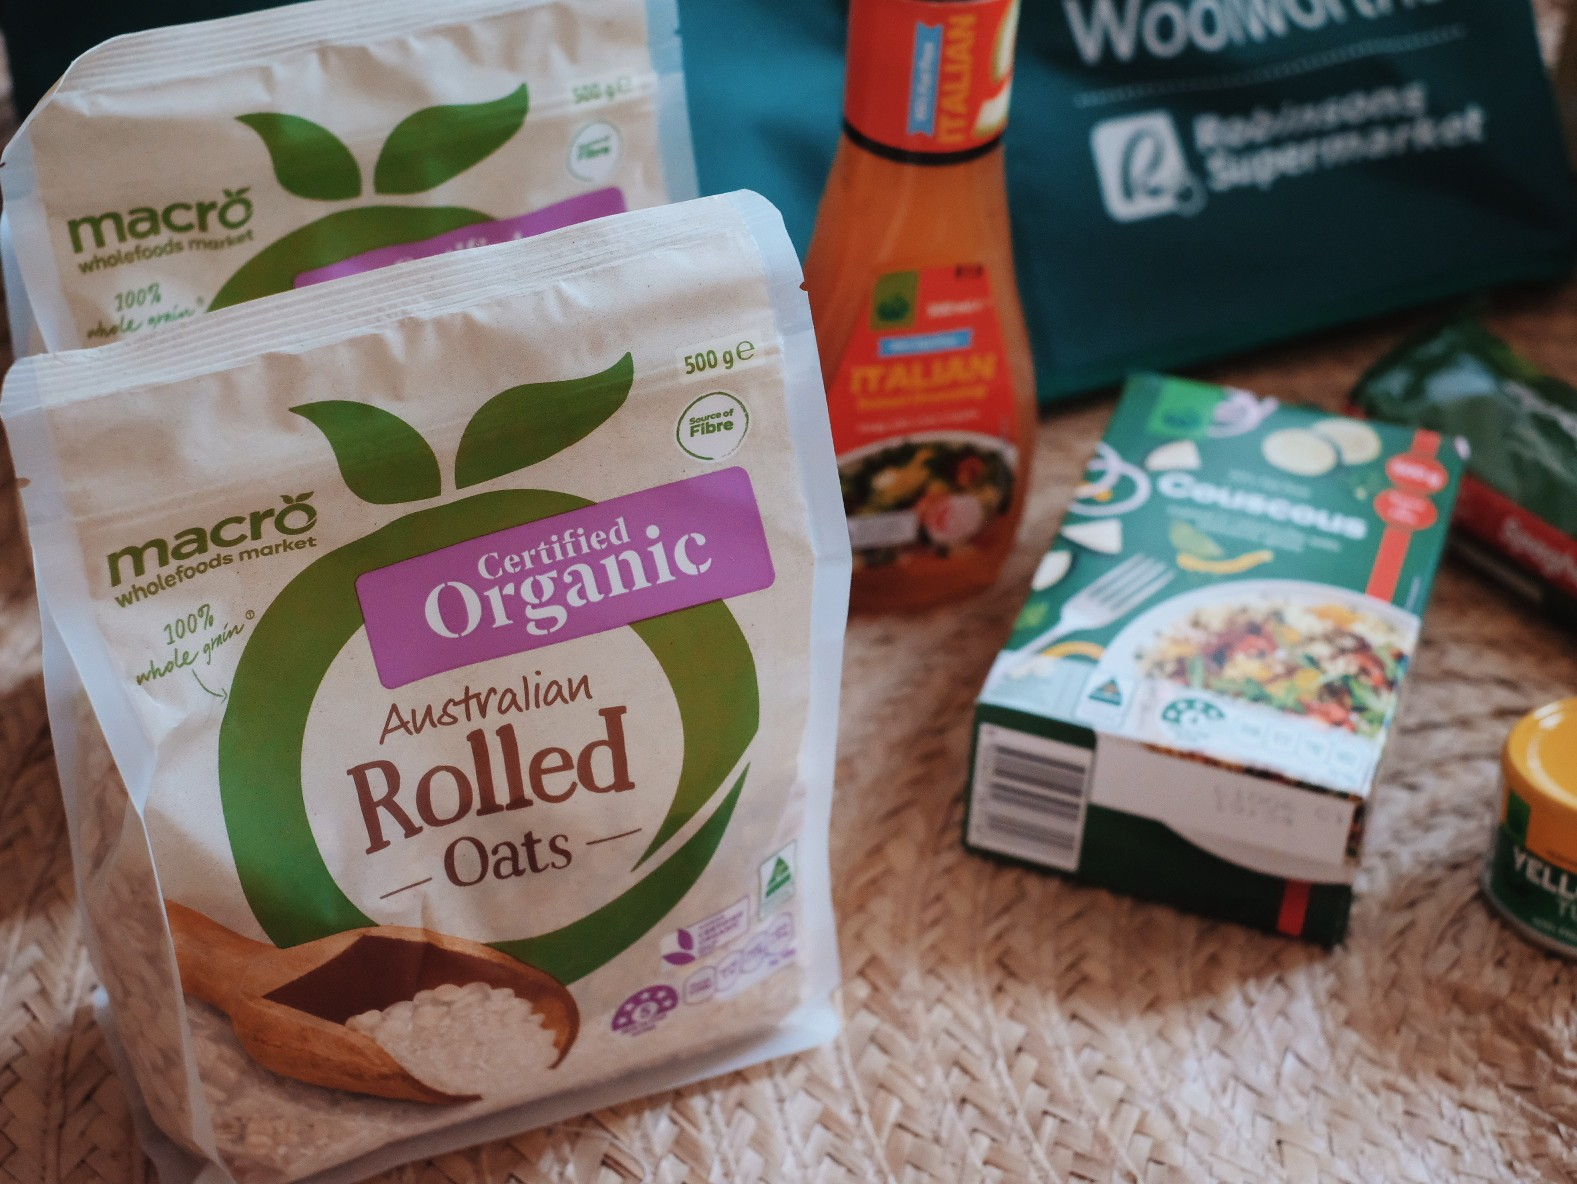 woolworths products philippines